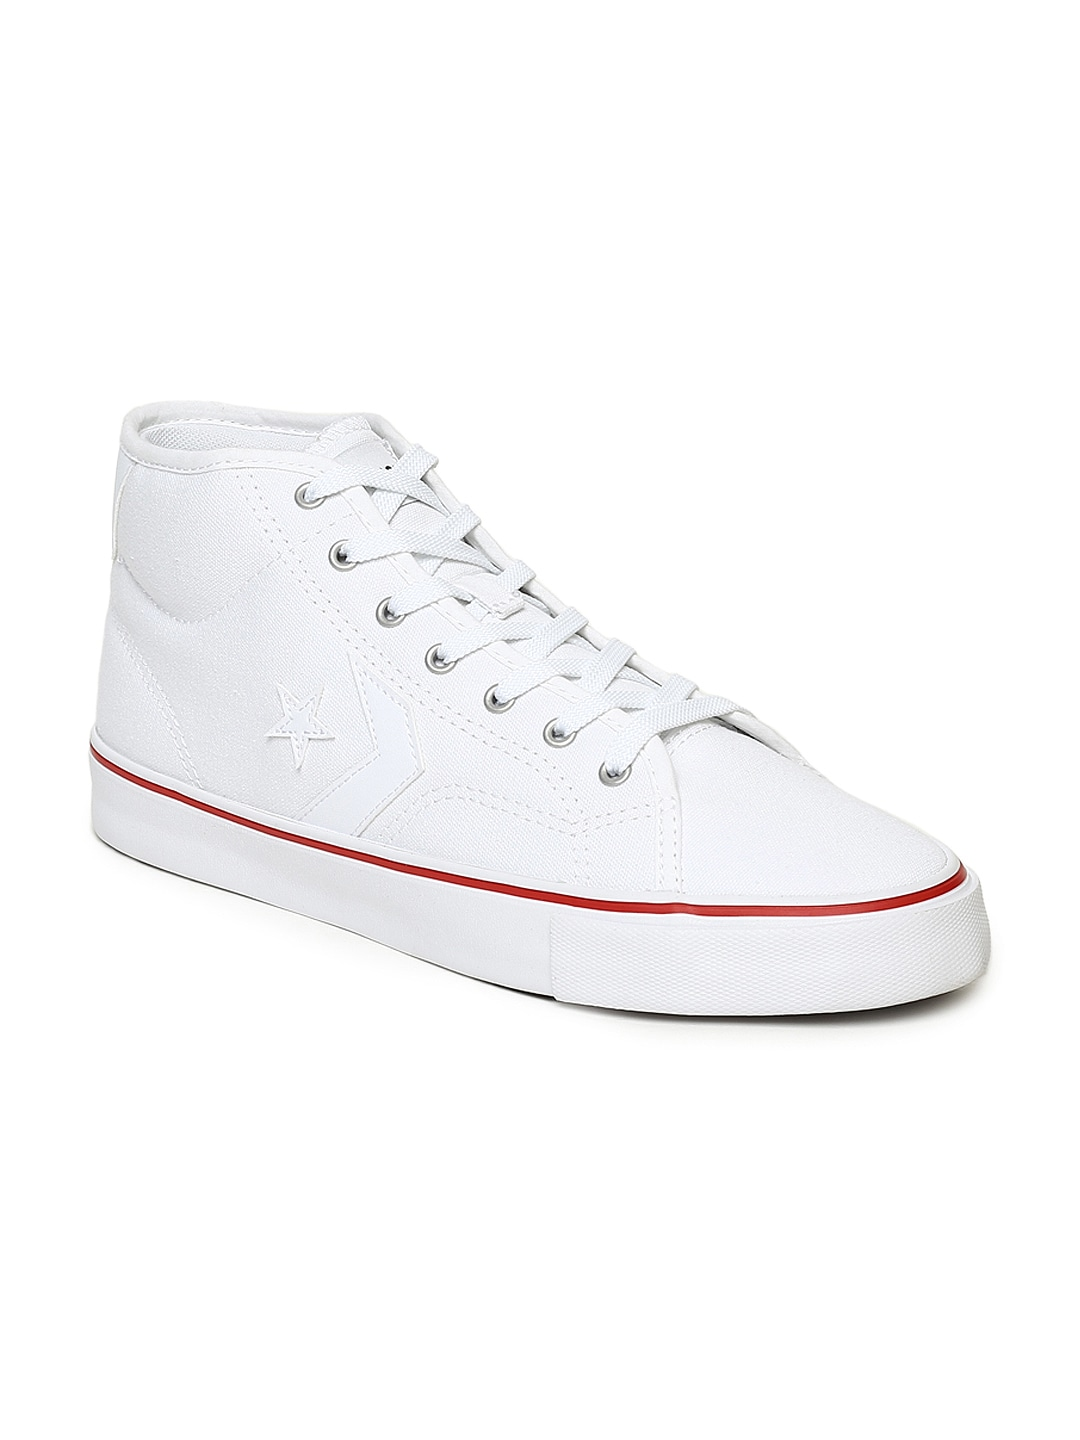 282f0ae31489 High Top Shoes - Buy High Top Shoes online in India